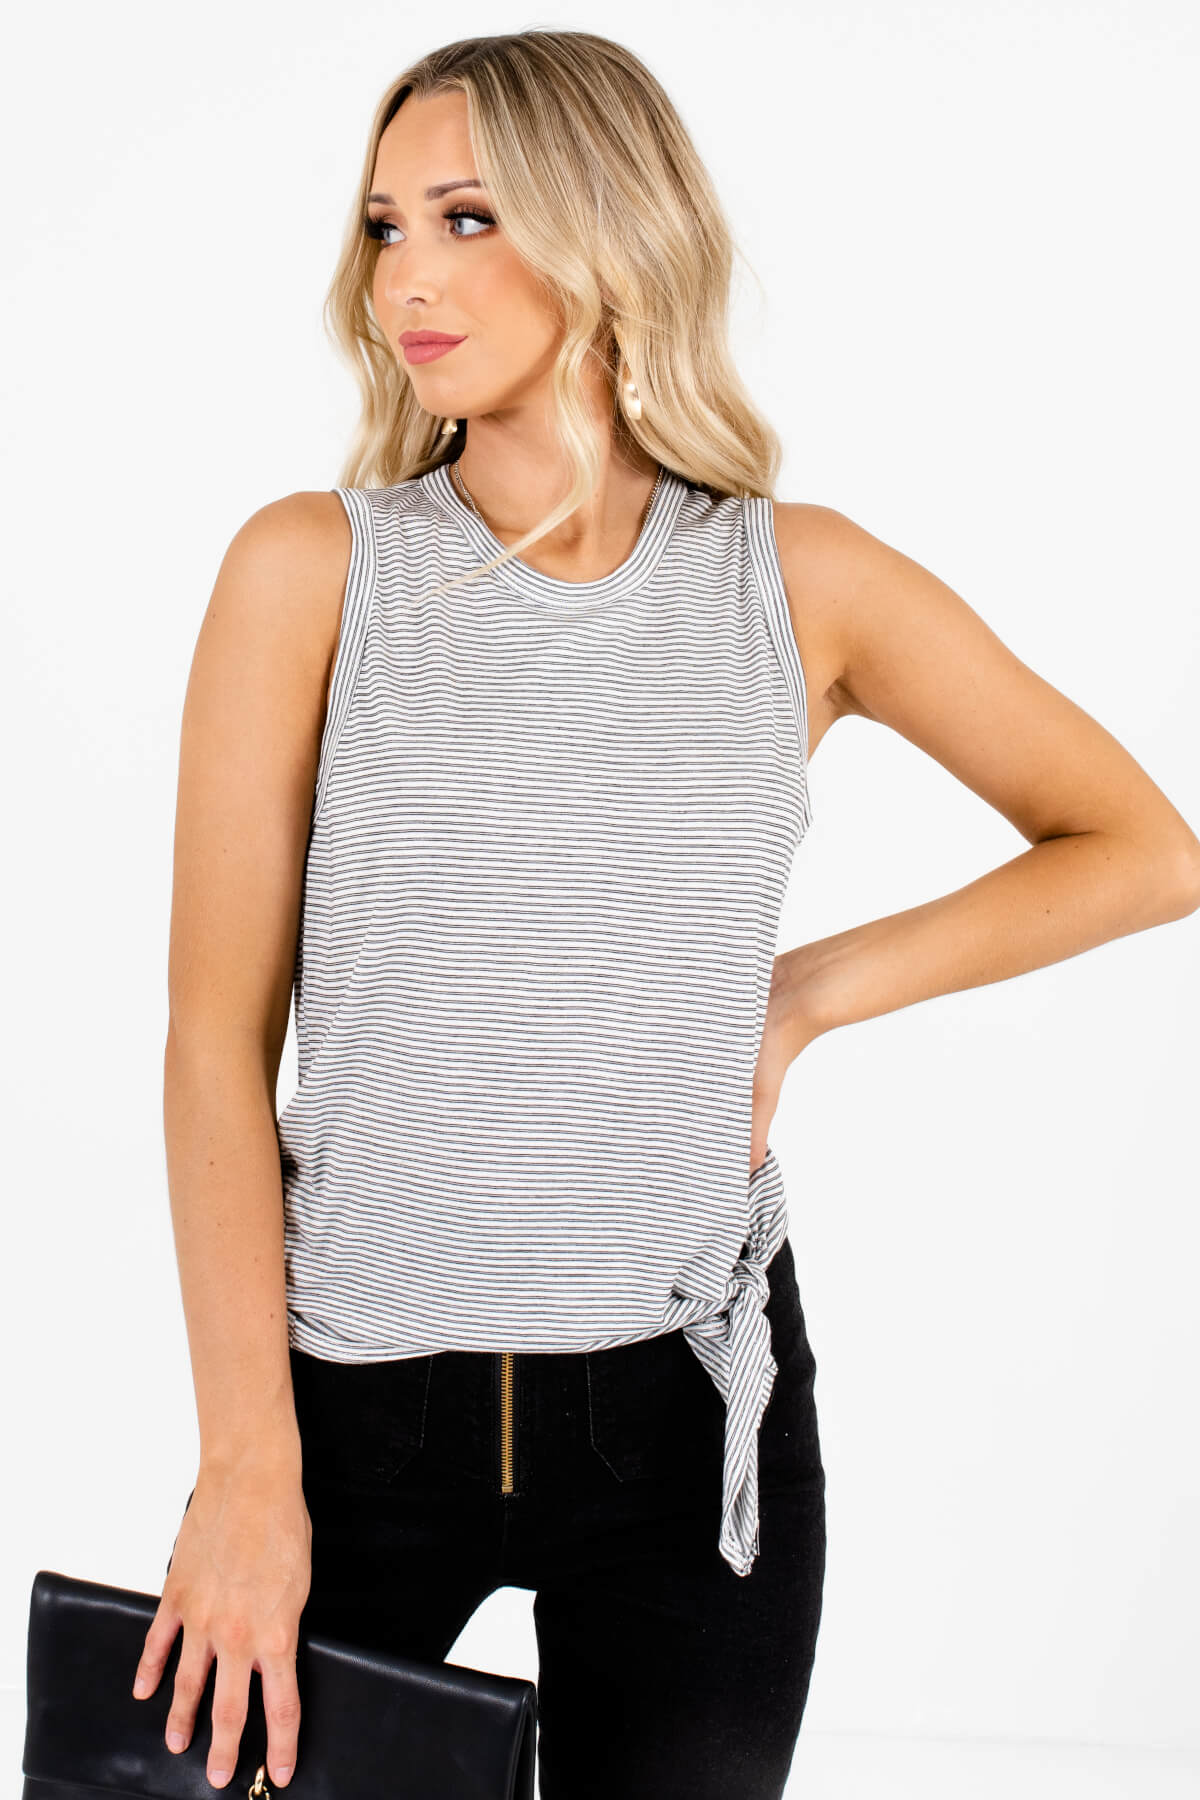 White and Black Stripe Patterned Boutique Tank Tops for Women